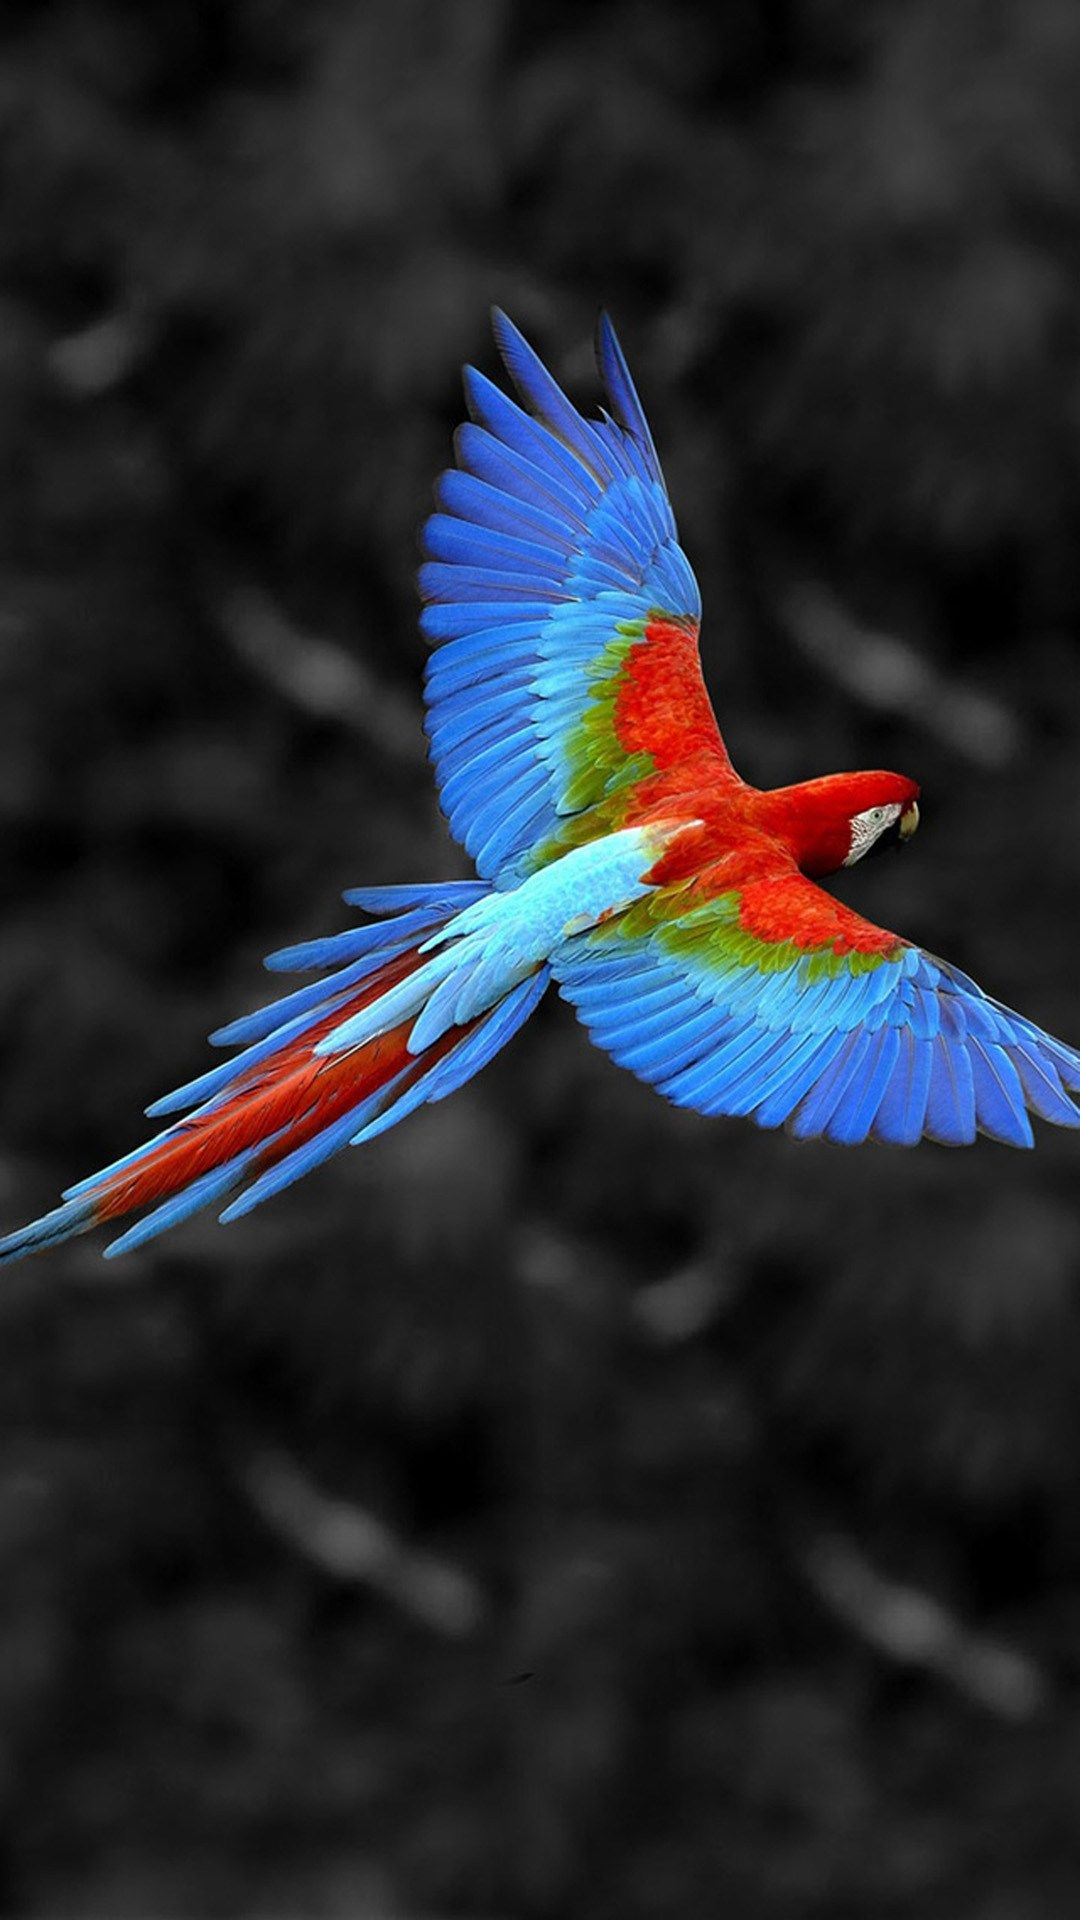 Wallpapers Animals Scarlet Macaw Parrot Pictures Funny Doblelol Com Macaw Macaw Wallpaper Macaw Parrot